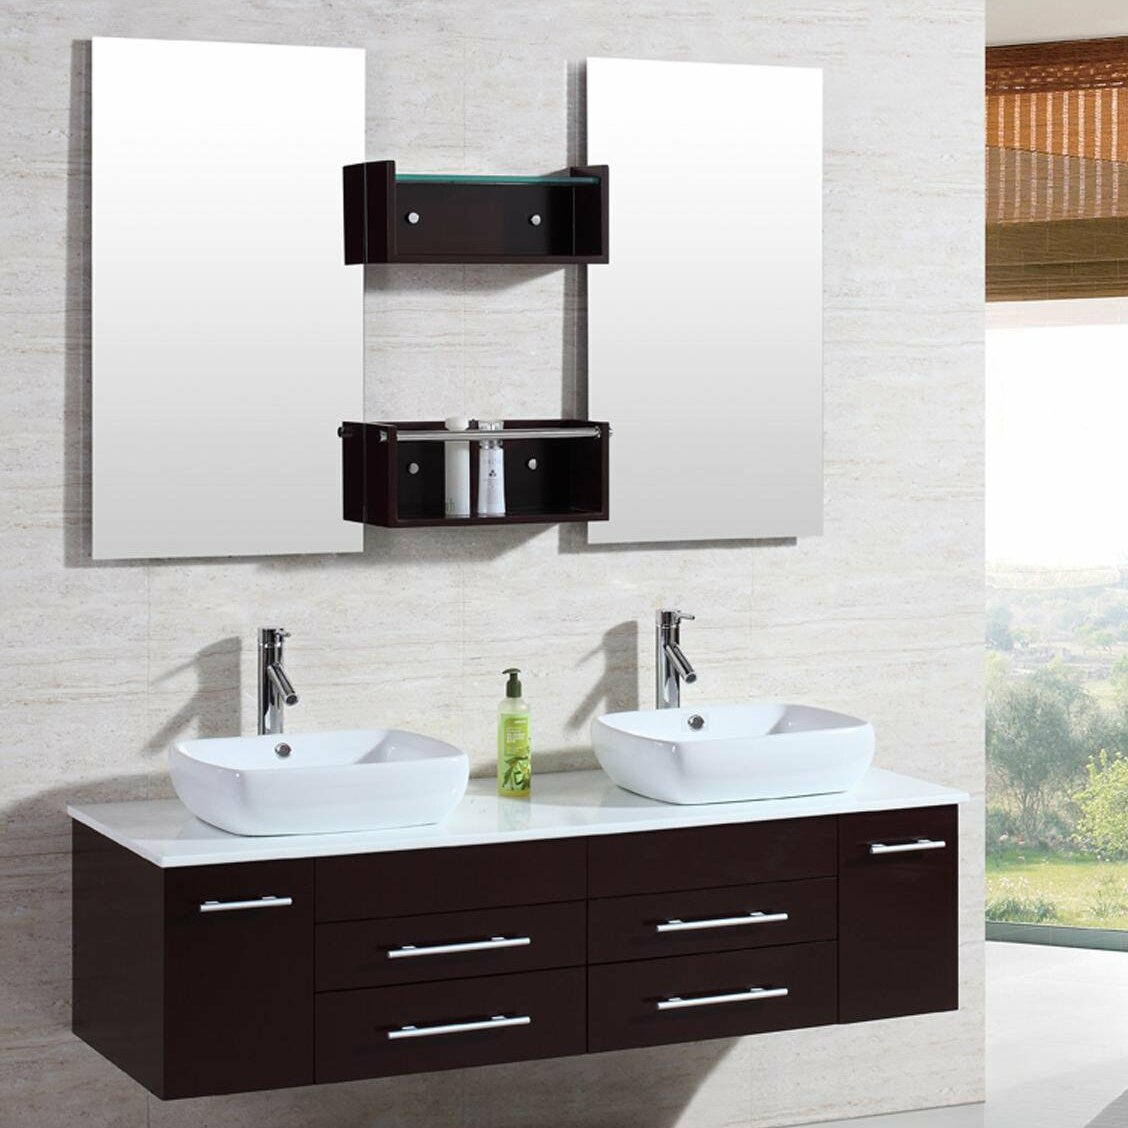 Kokols 60 Double Floating Bathroom Vanity Set With Mirror Reviews Wayfair